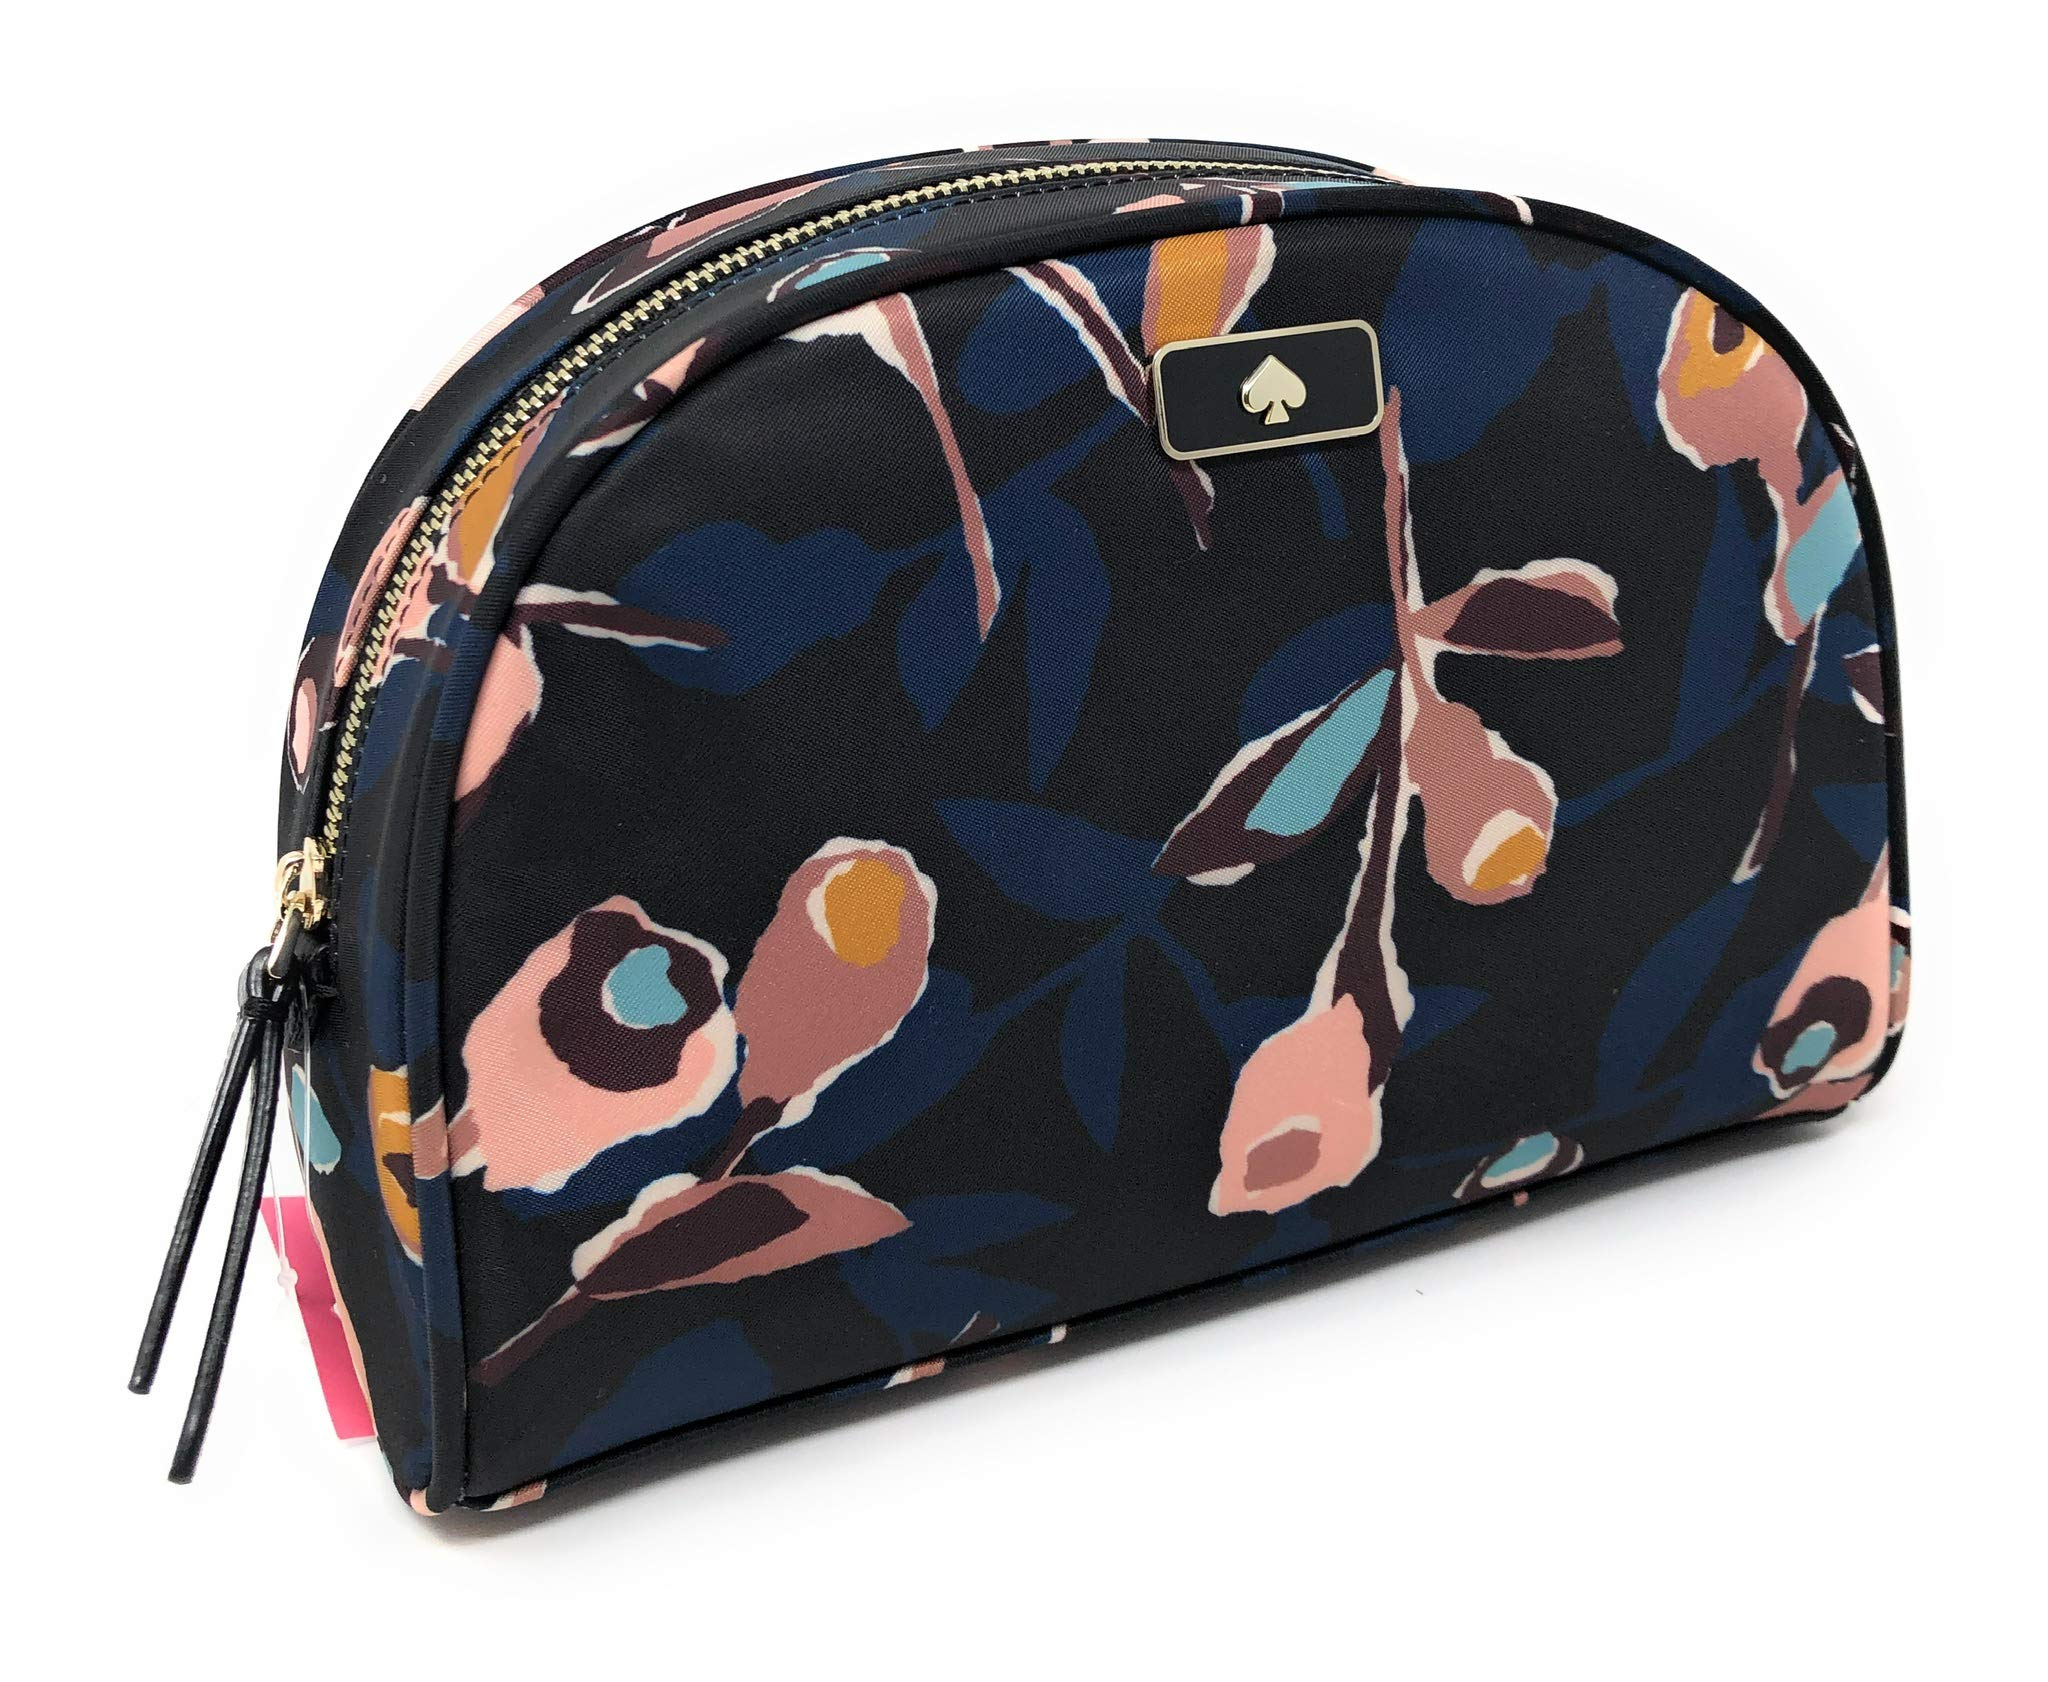 Kate Sapde Medium Dome Cosmetic Make-Up Travel Bag Black Multi Rose